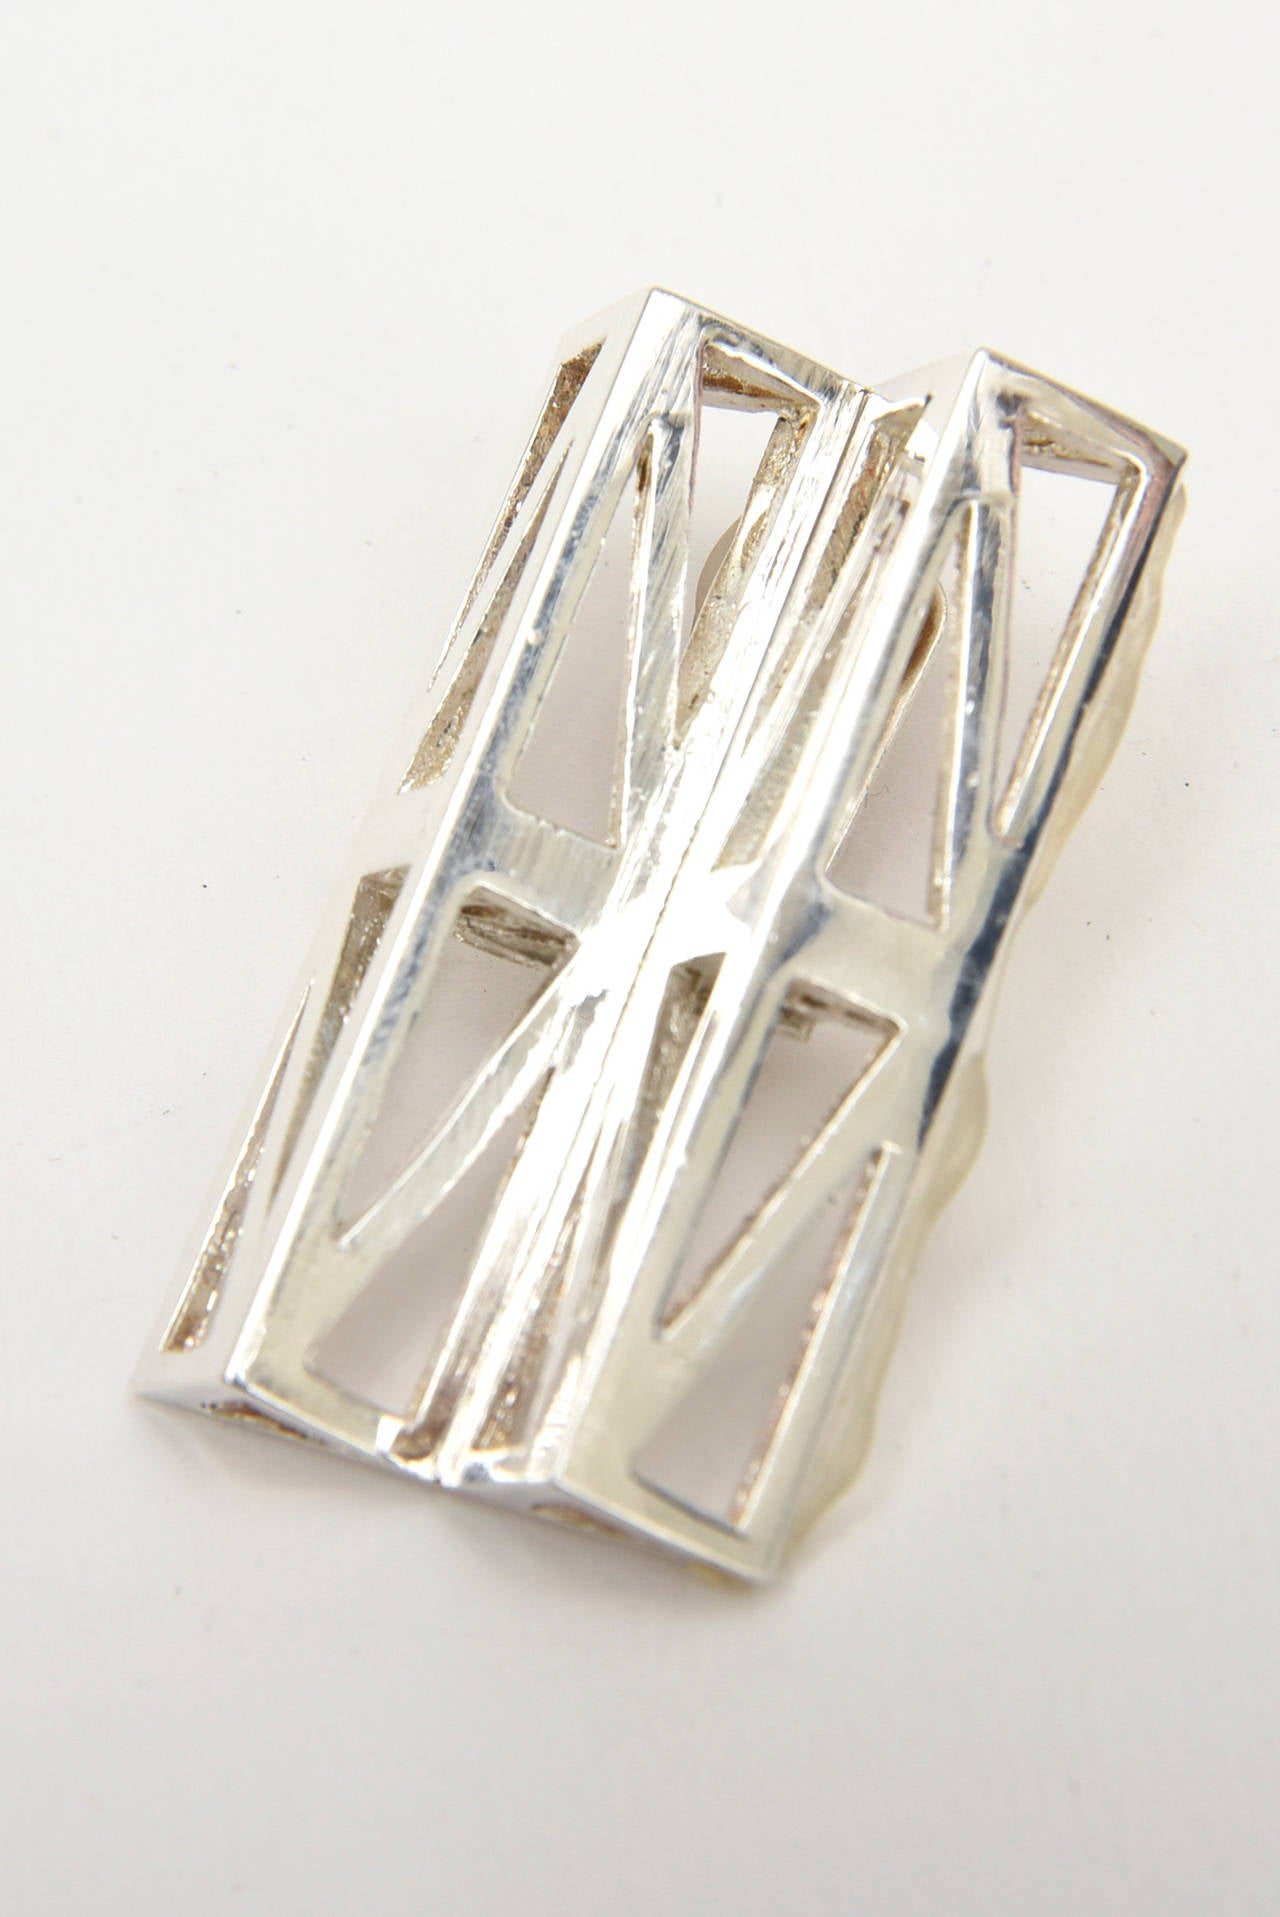 These oh so modernist geometric runway signed silver-plate clip on earrings were runway. They are sculptural and au courant. They are marked; Claude Montana Pour Marie Paris. They were fabulous then, now even more fabulous. They are quite eye